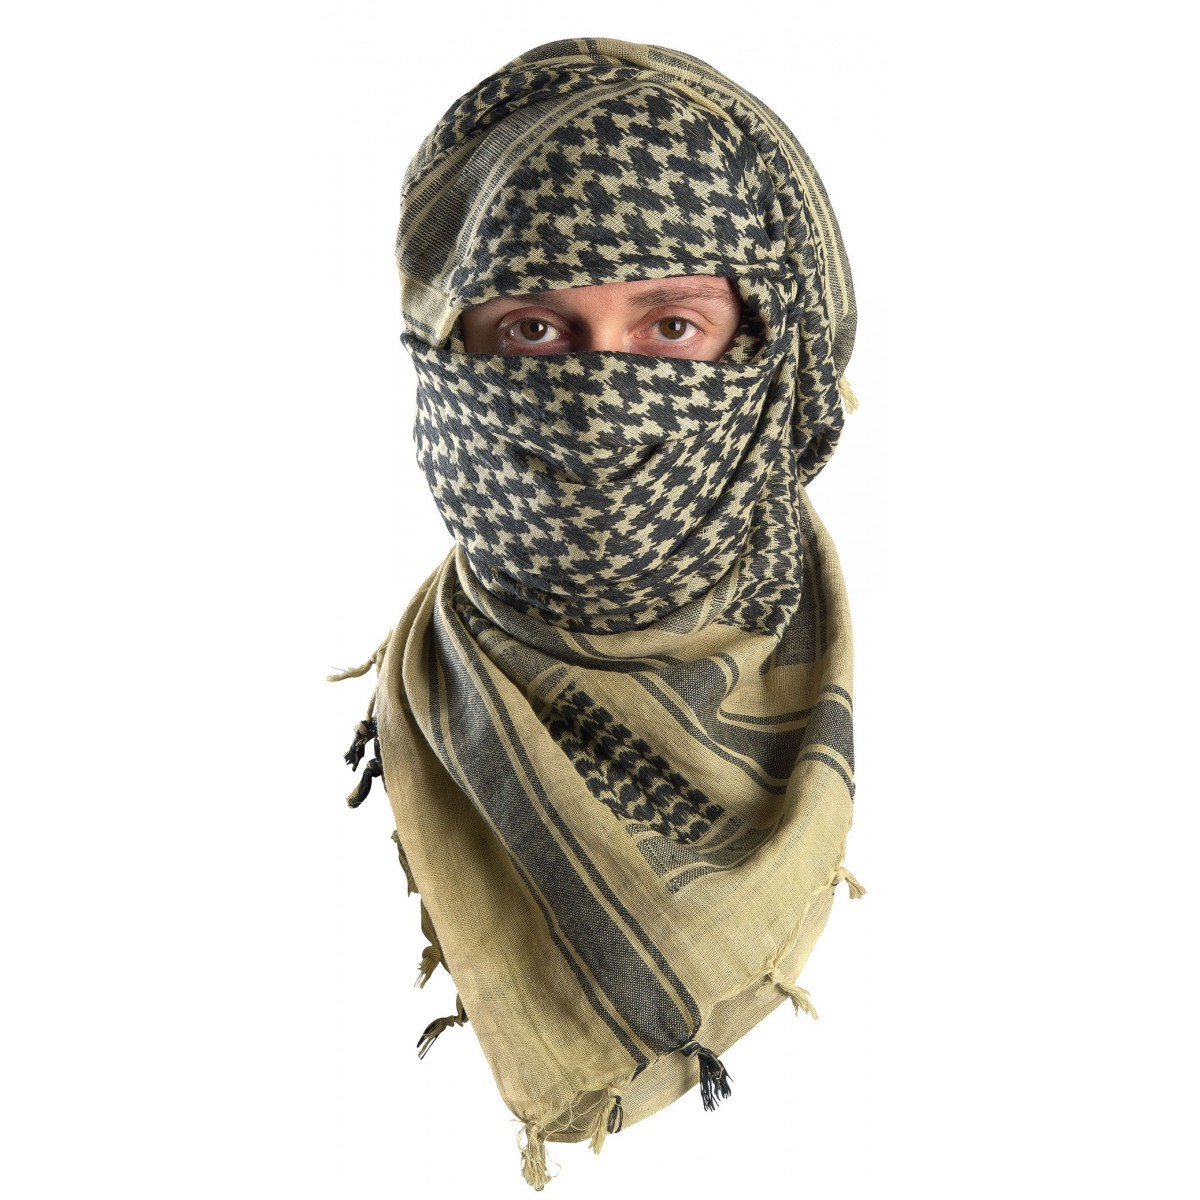 Foulard multifonctions Shemagh - Protection visage - Inuka 21b110f074f